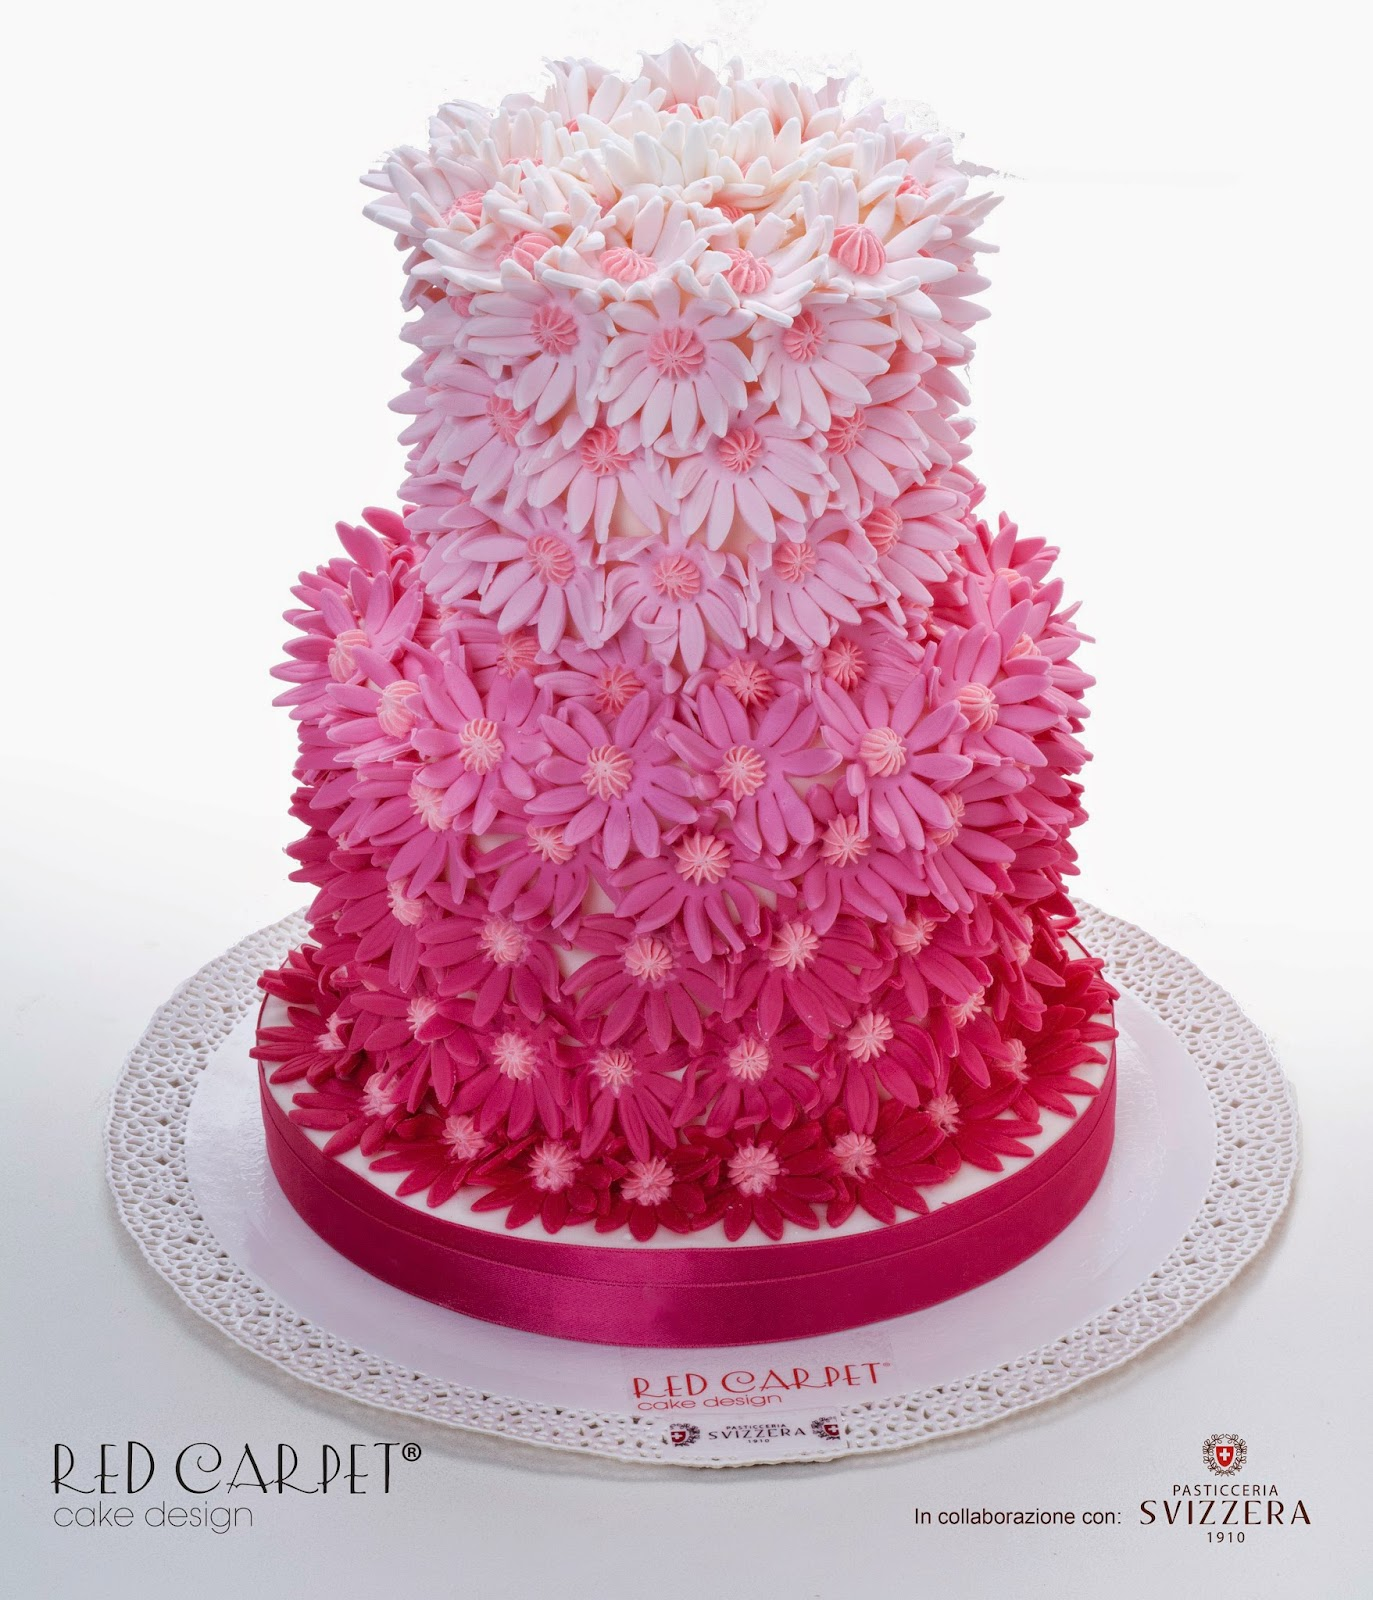 DAISY CAKES-by Red Carpet Cake Design® | Red Carpet Cake Design®